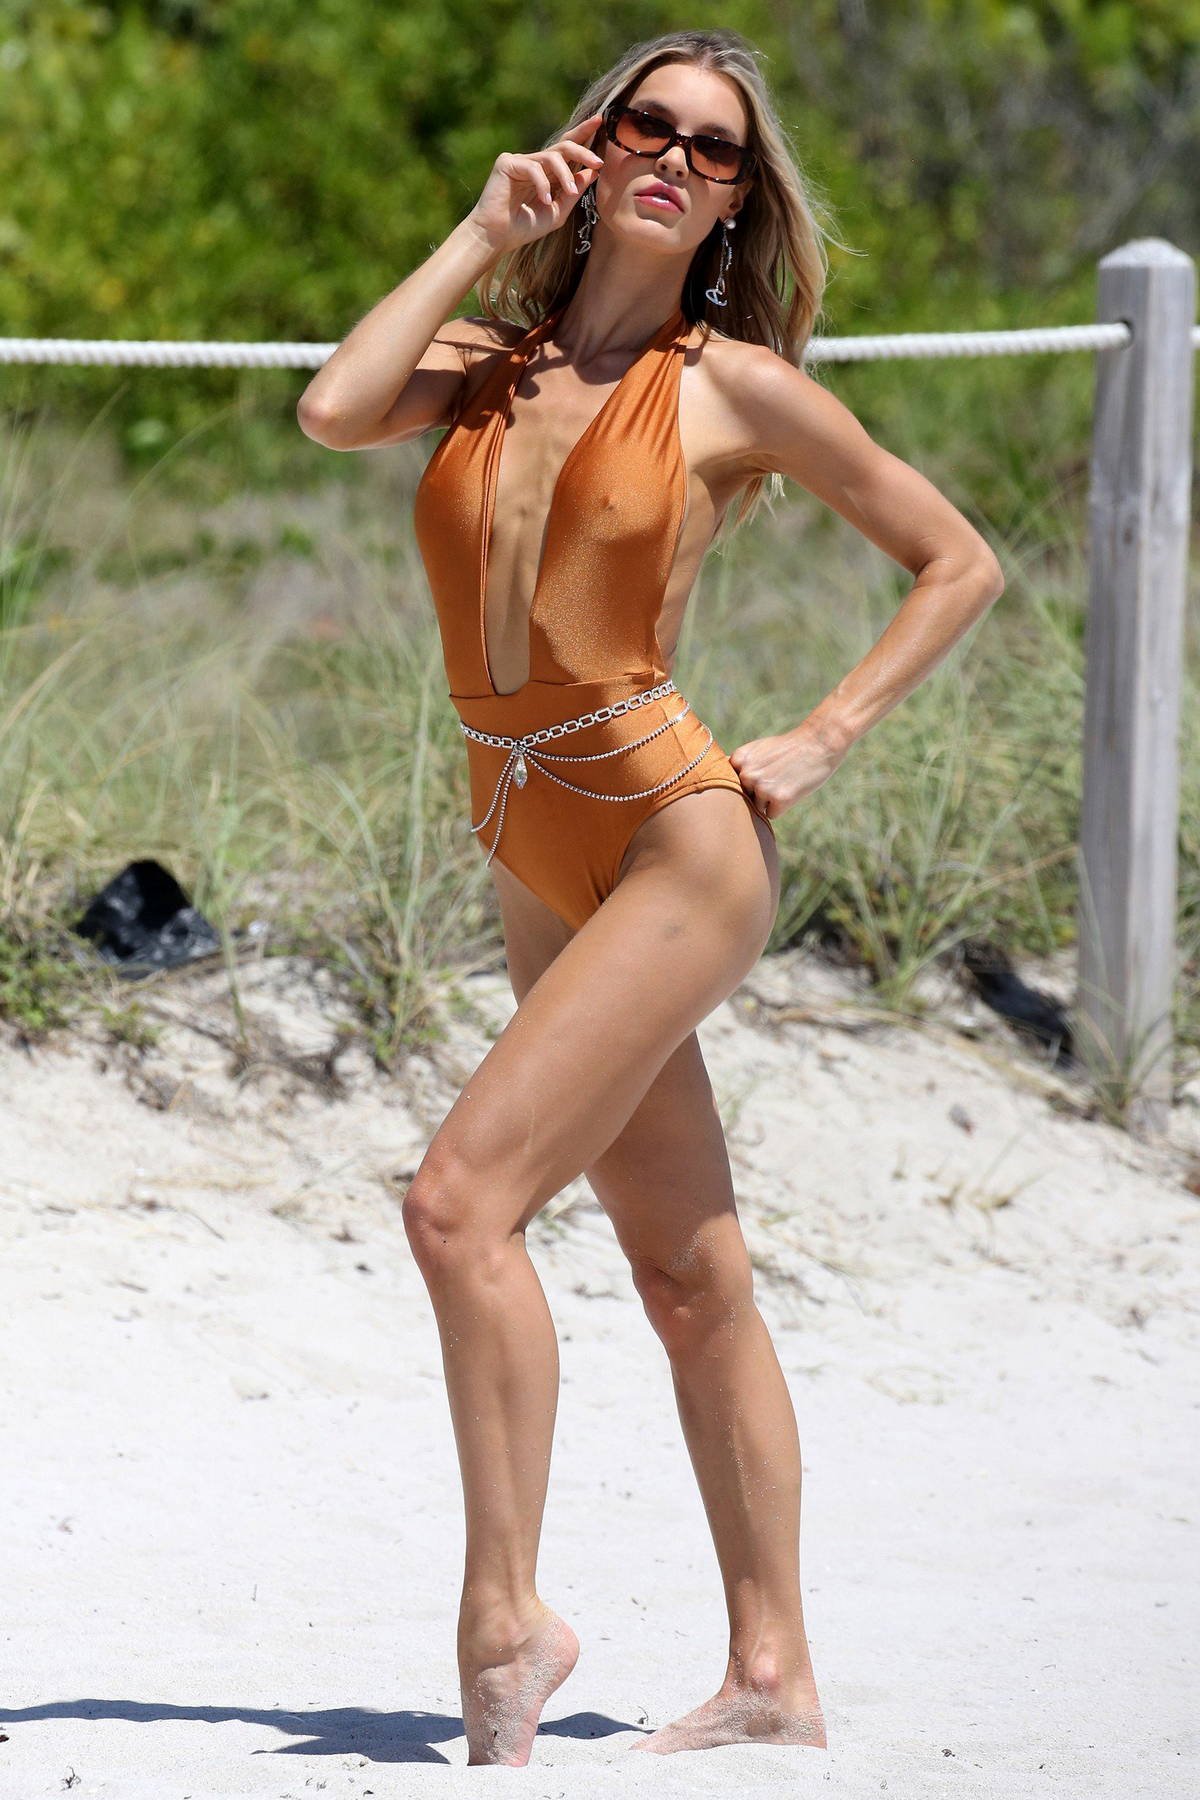 Joy Corrigan shows off her beach body while posing in a gold swimsuit during a photoshoot in Miami Beach, Florida